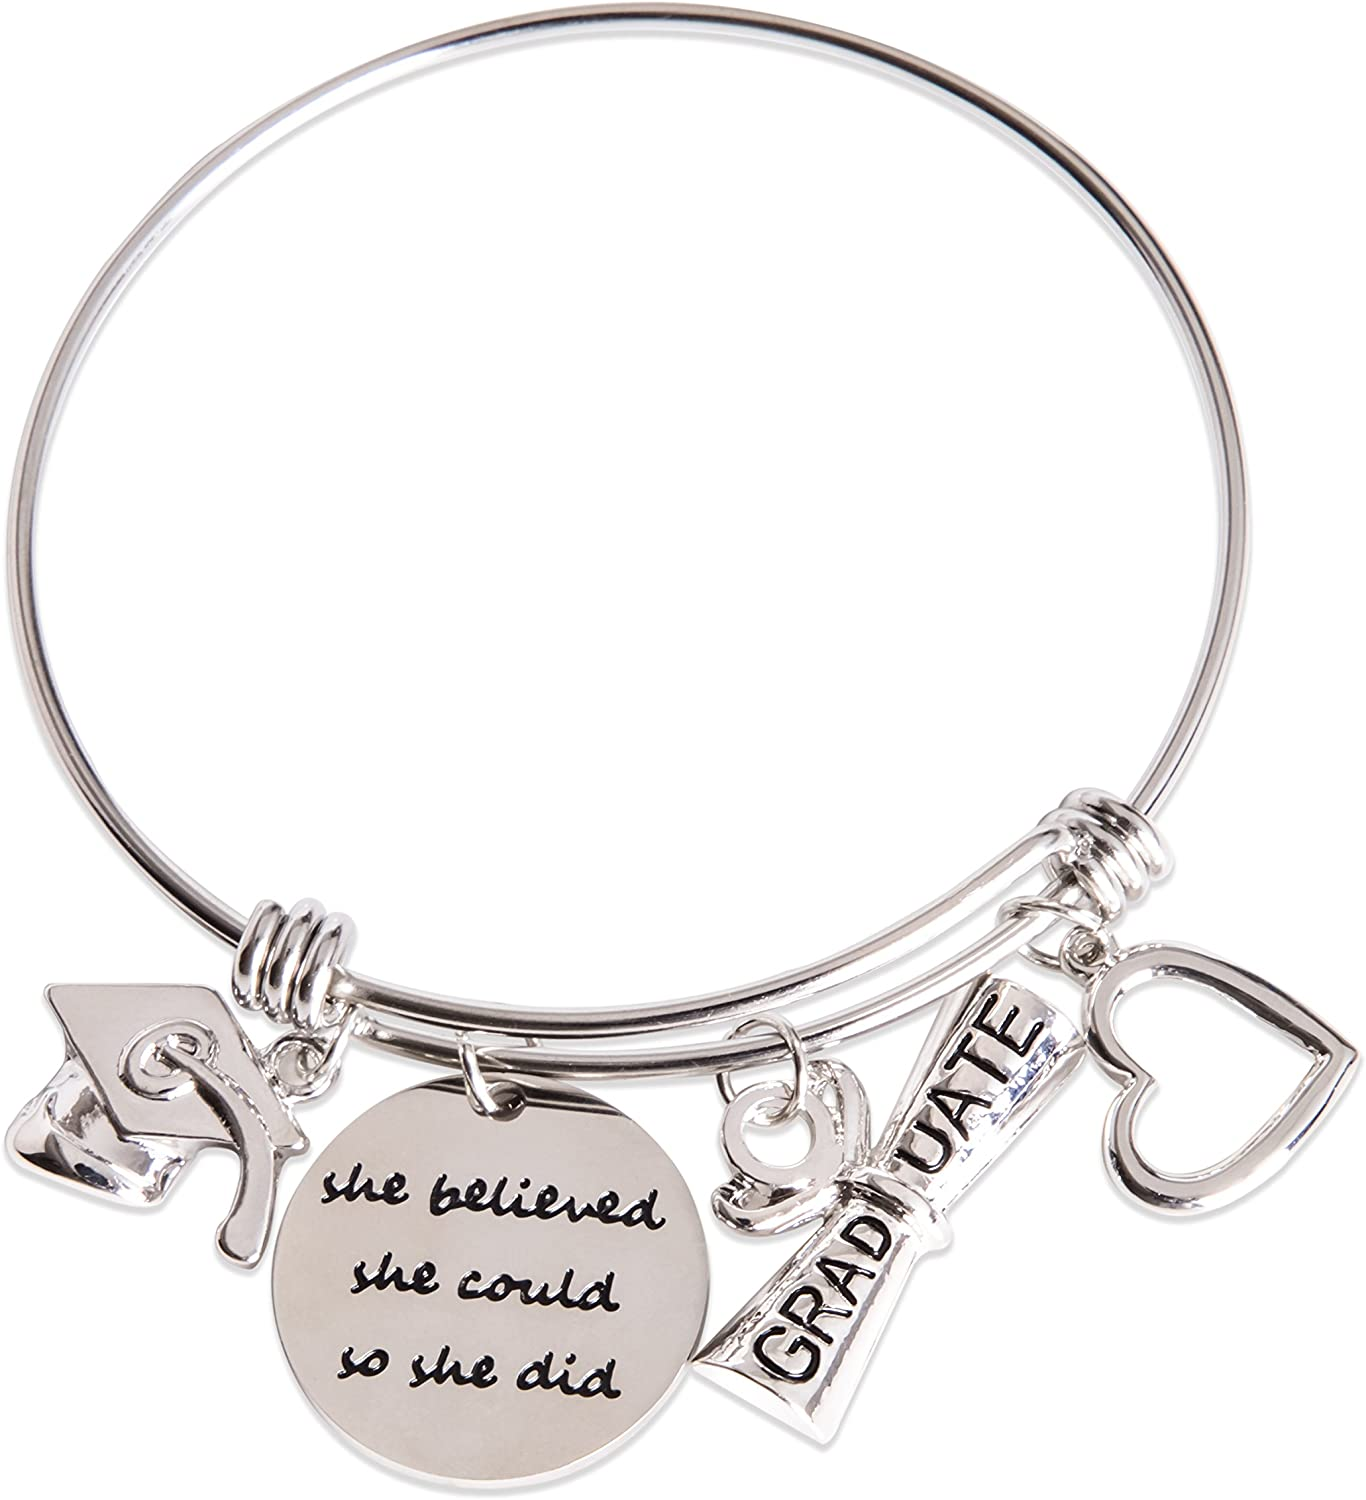 YOUMIYA Graduation Gift Bracelet for Women 2020 Inspirational Gift Jewelry Bracelet She Believed She Could So She Did Adjustable Bangle for Women Girl